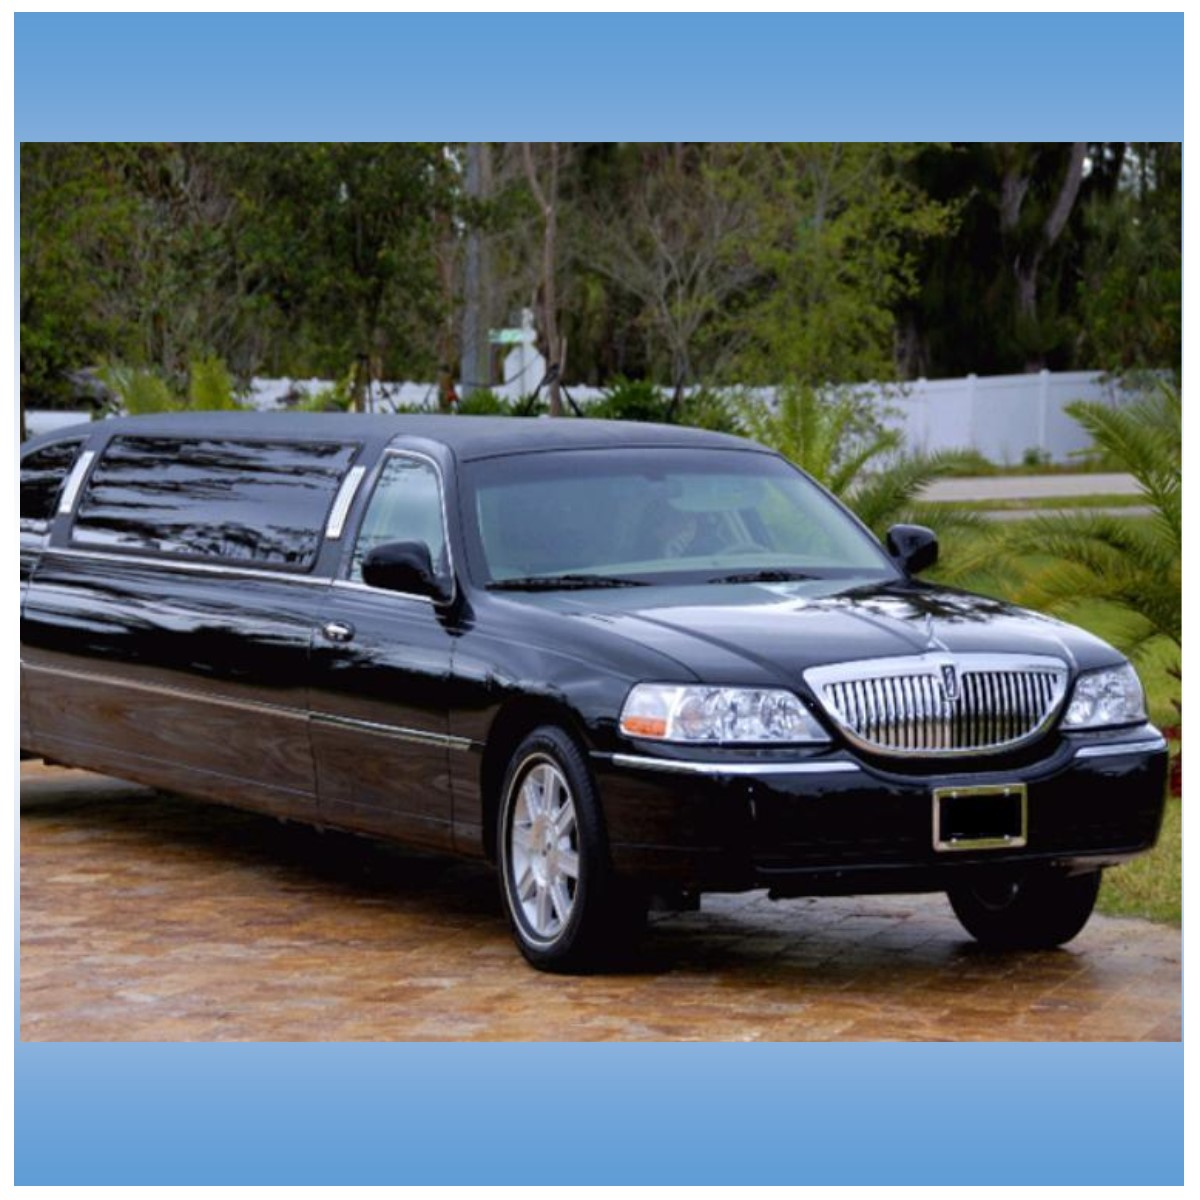 Picture of a limousine